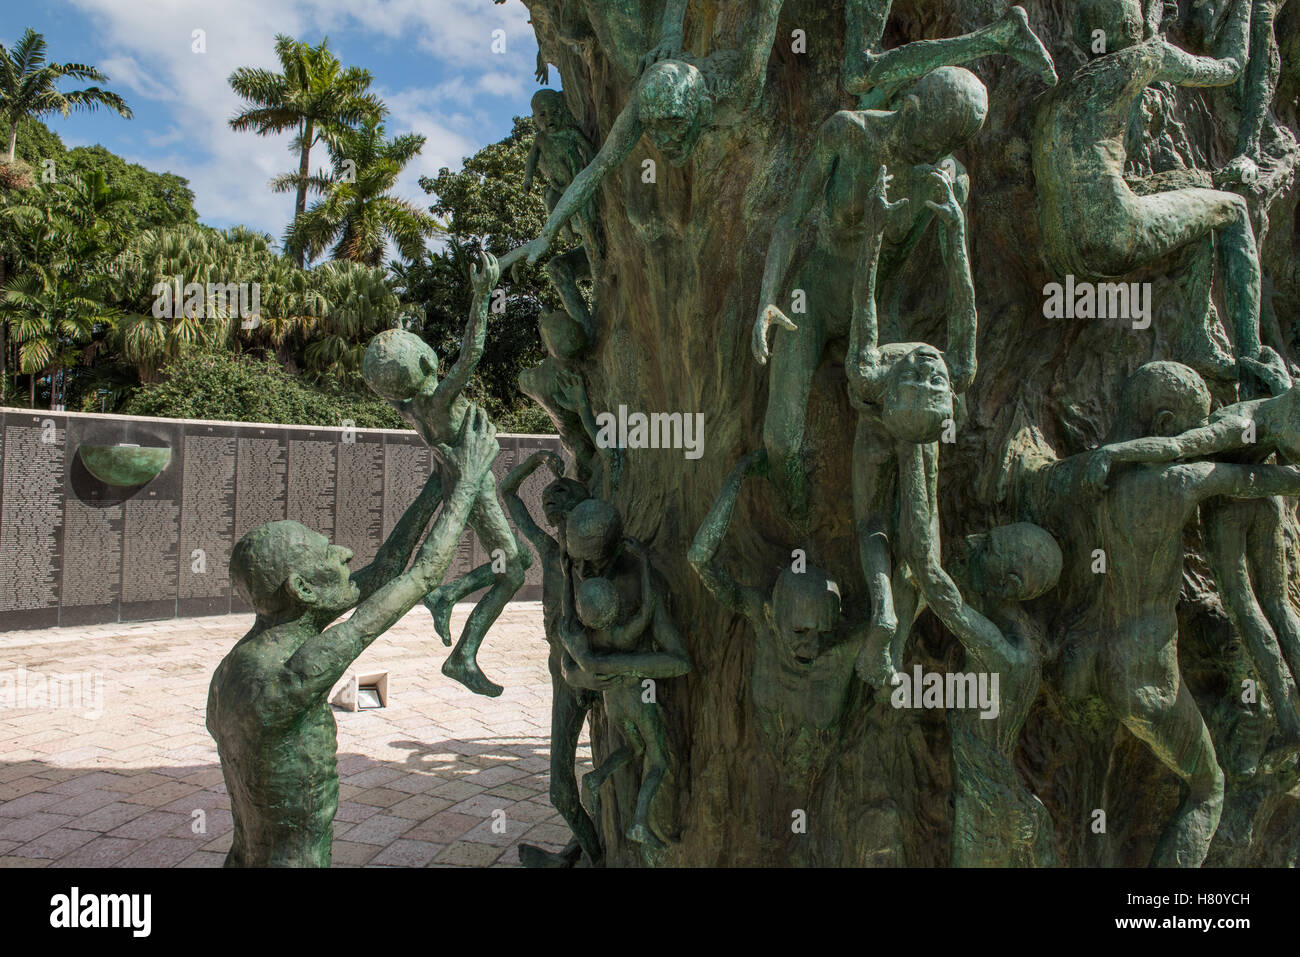 Holocaust Memorial Museum. Miami Beach, Florida, In memory of the 6 million Jewish victims of the Holocaust. Stock Photo